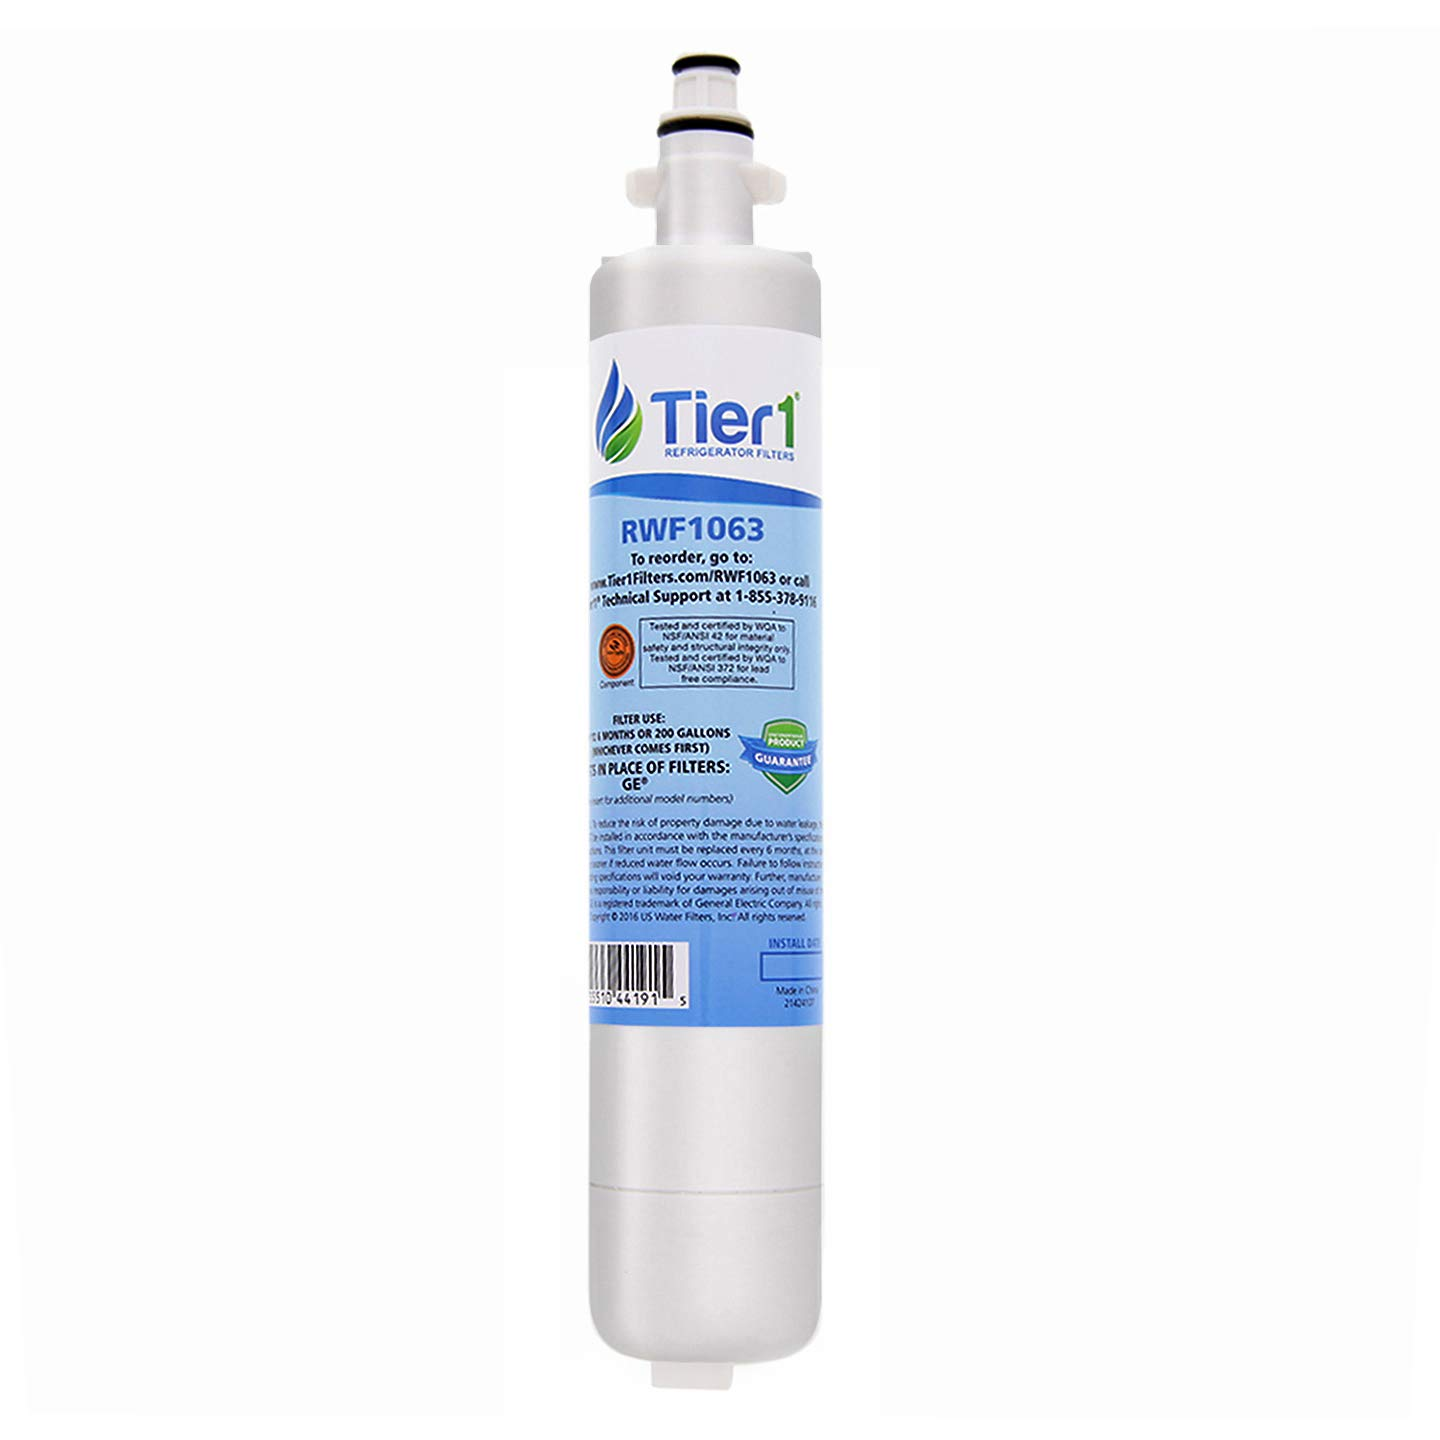 Tier1 Replacement for GE RPWF Refrigerator Water Filter (NOT for RPWFE)